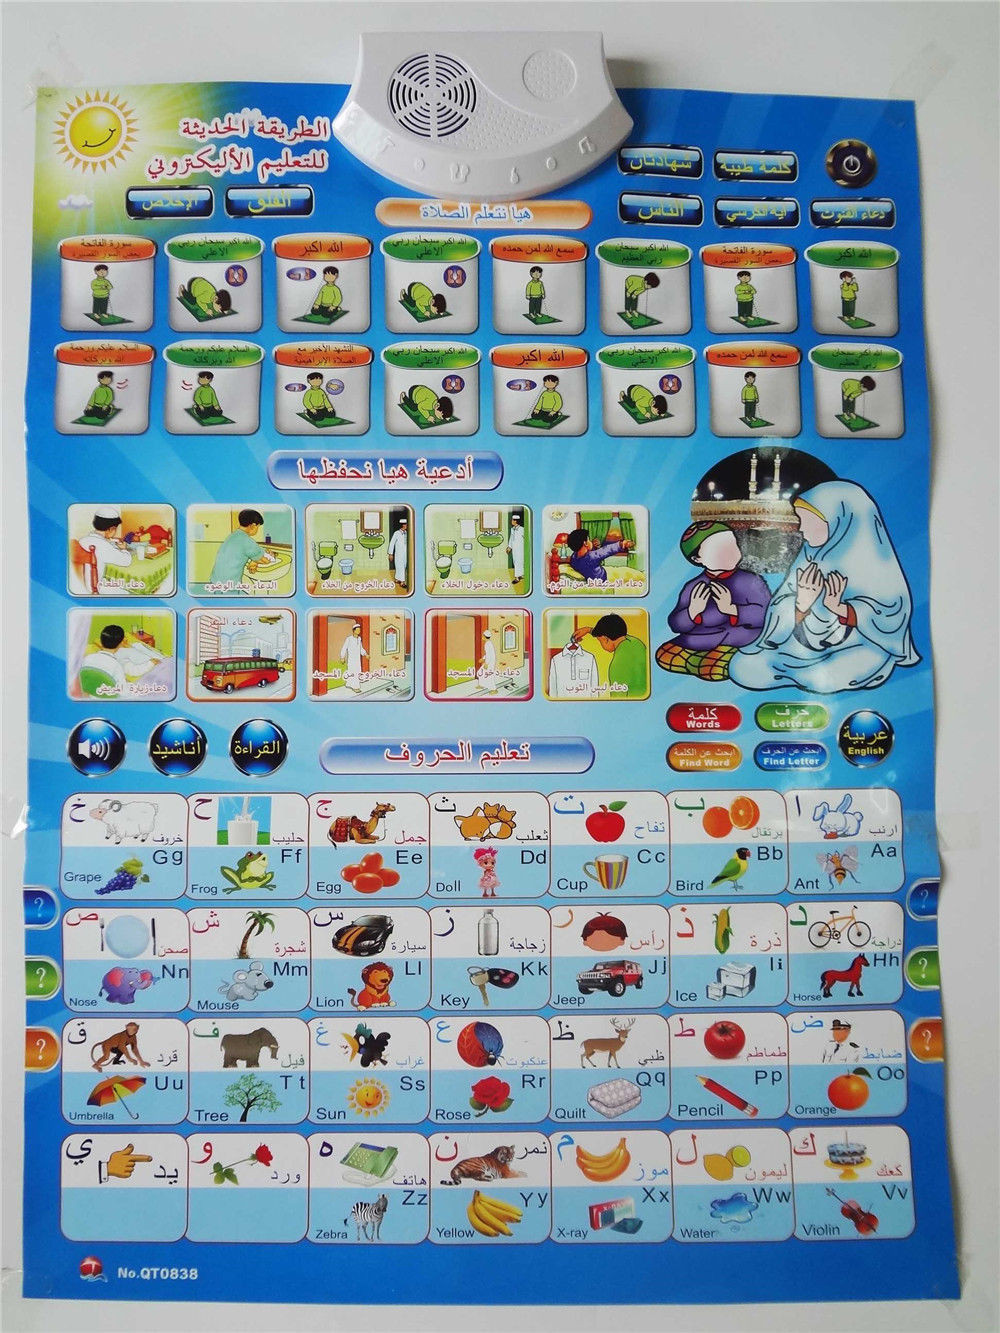 Arabic&English Bilingual Toys Pad Quran,ABC and Word Flip Charts Learning Machine Best Gifts for Muslim Baby